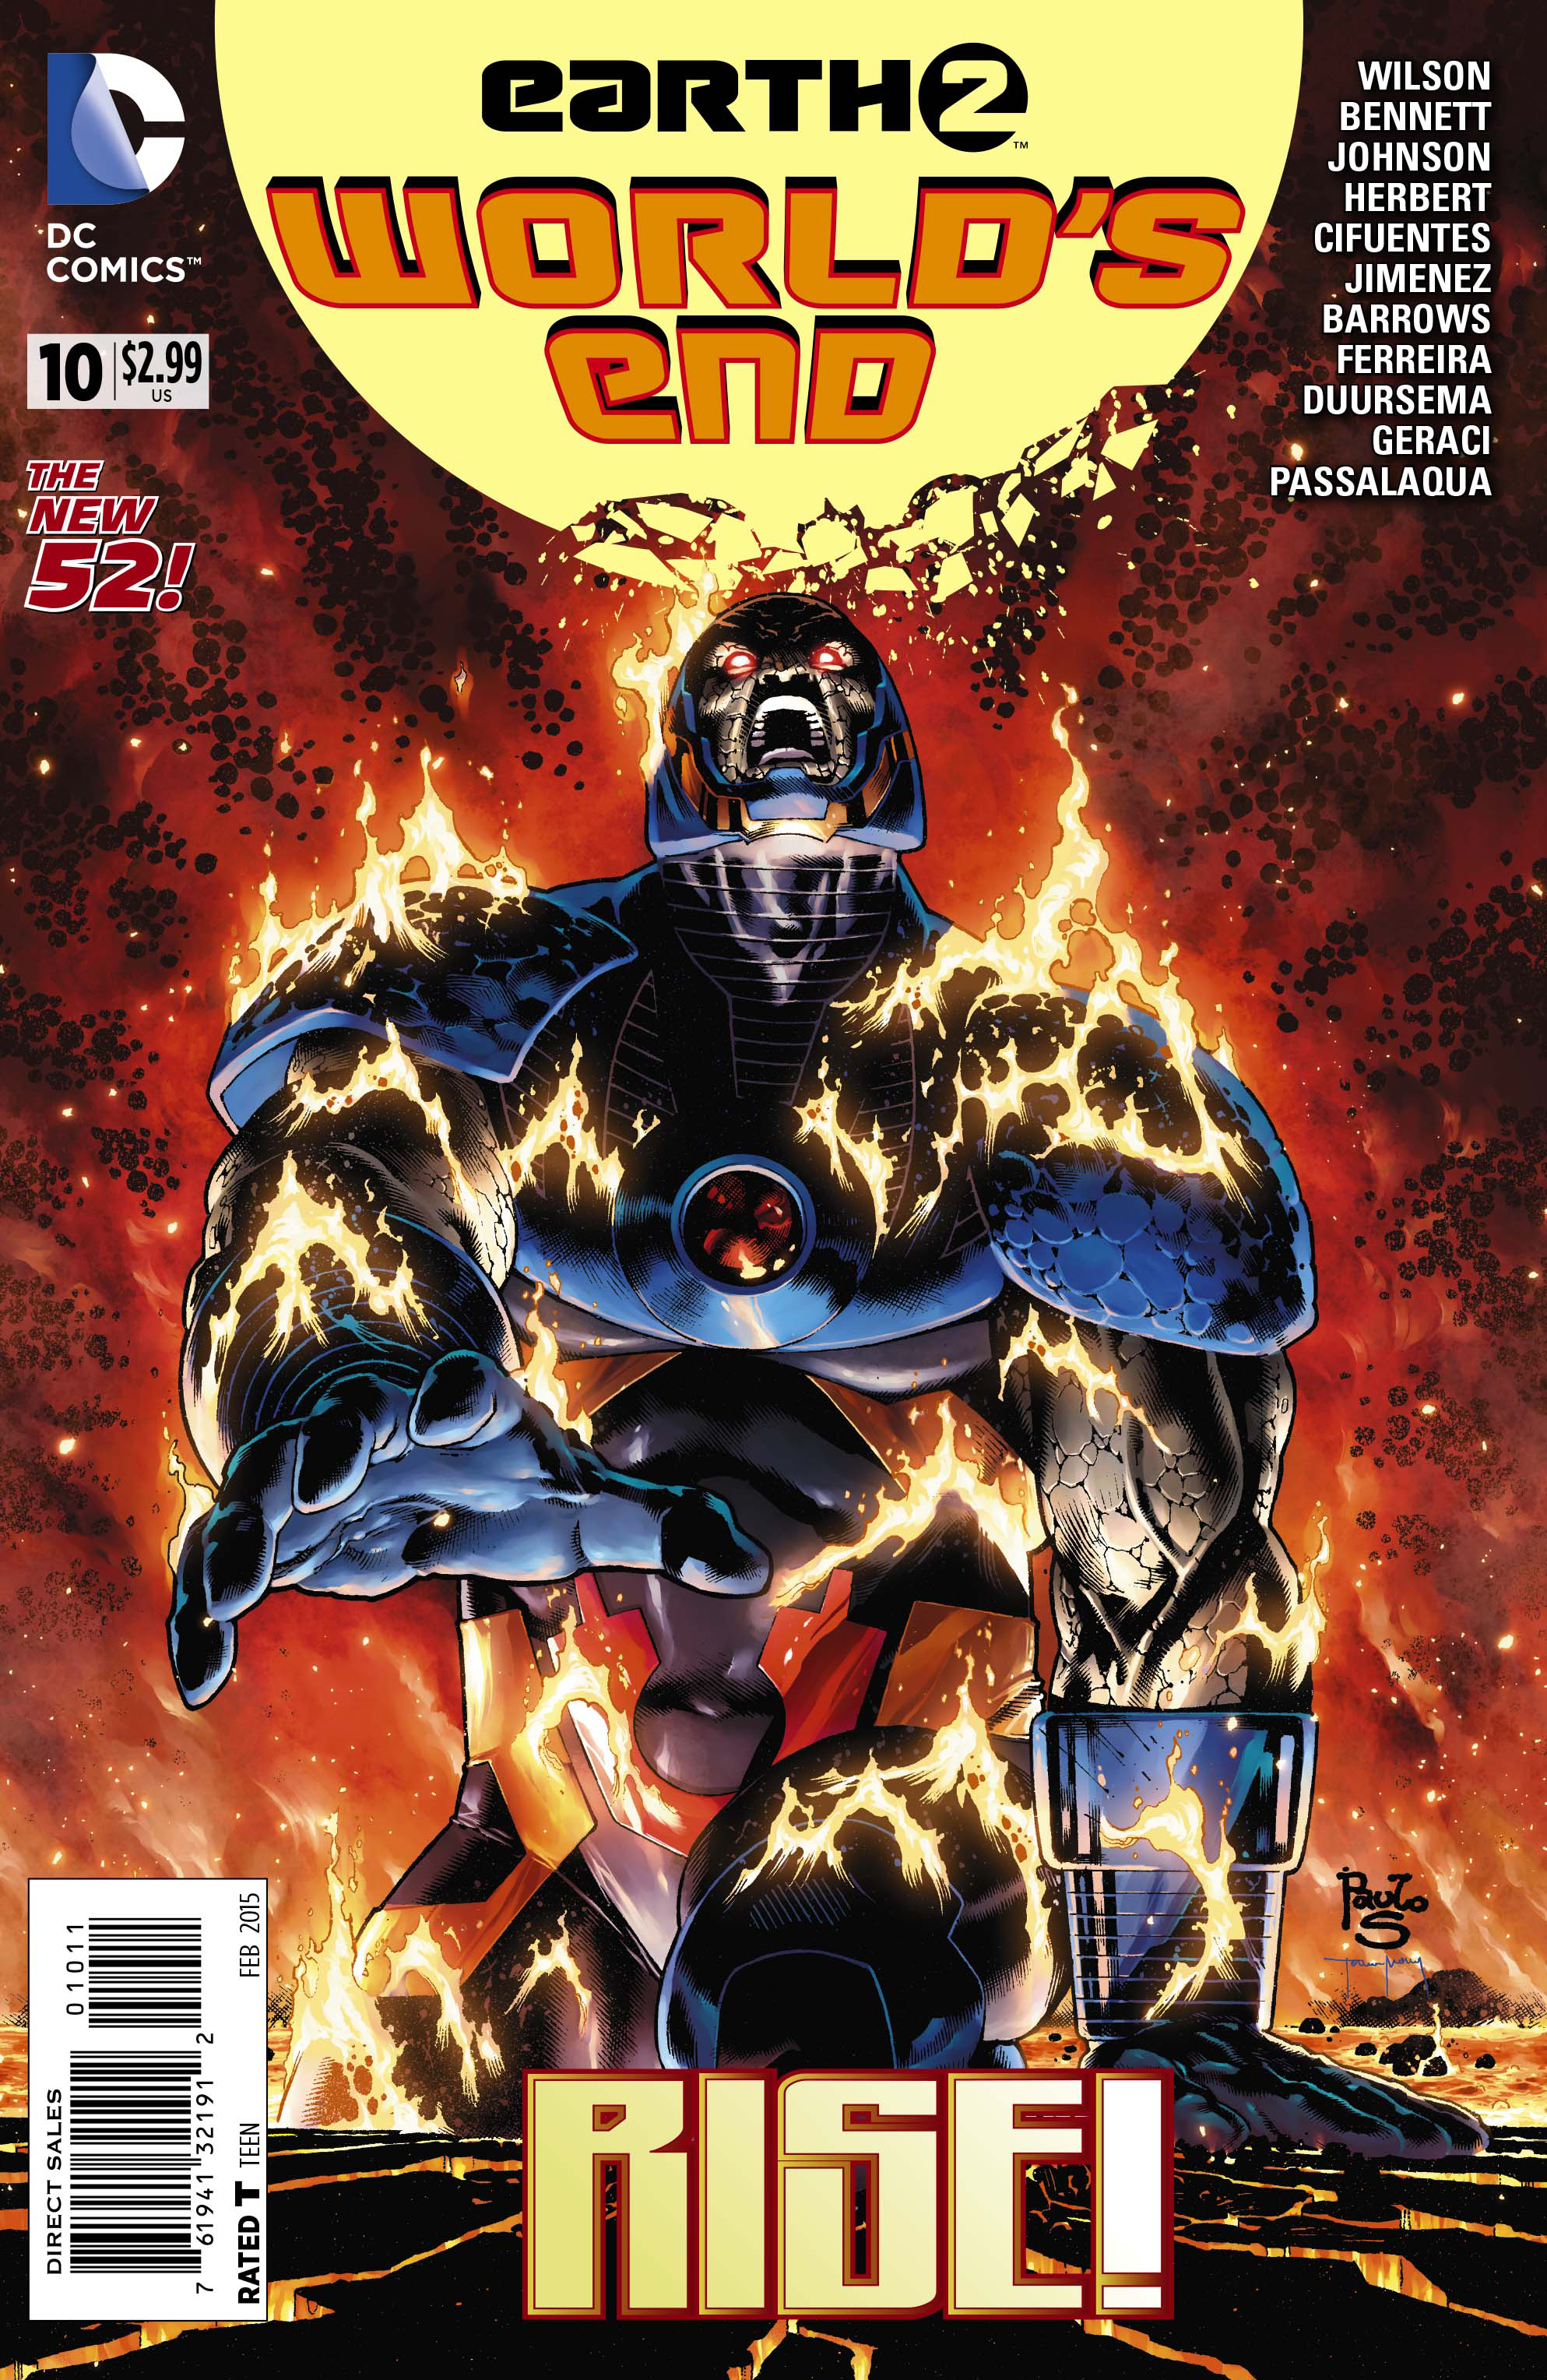 EARTH 2 WORLDS END #10